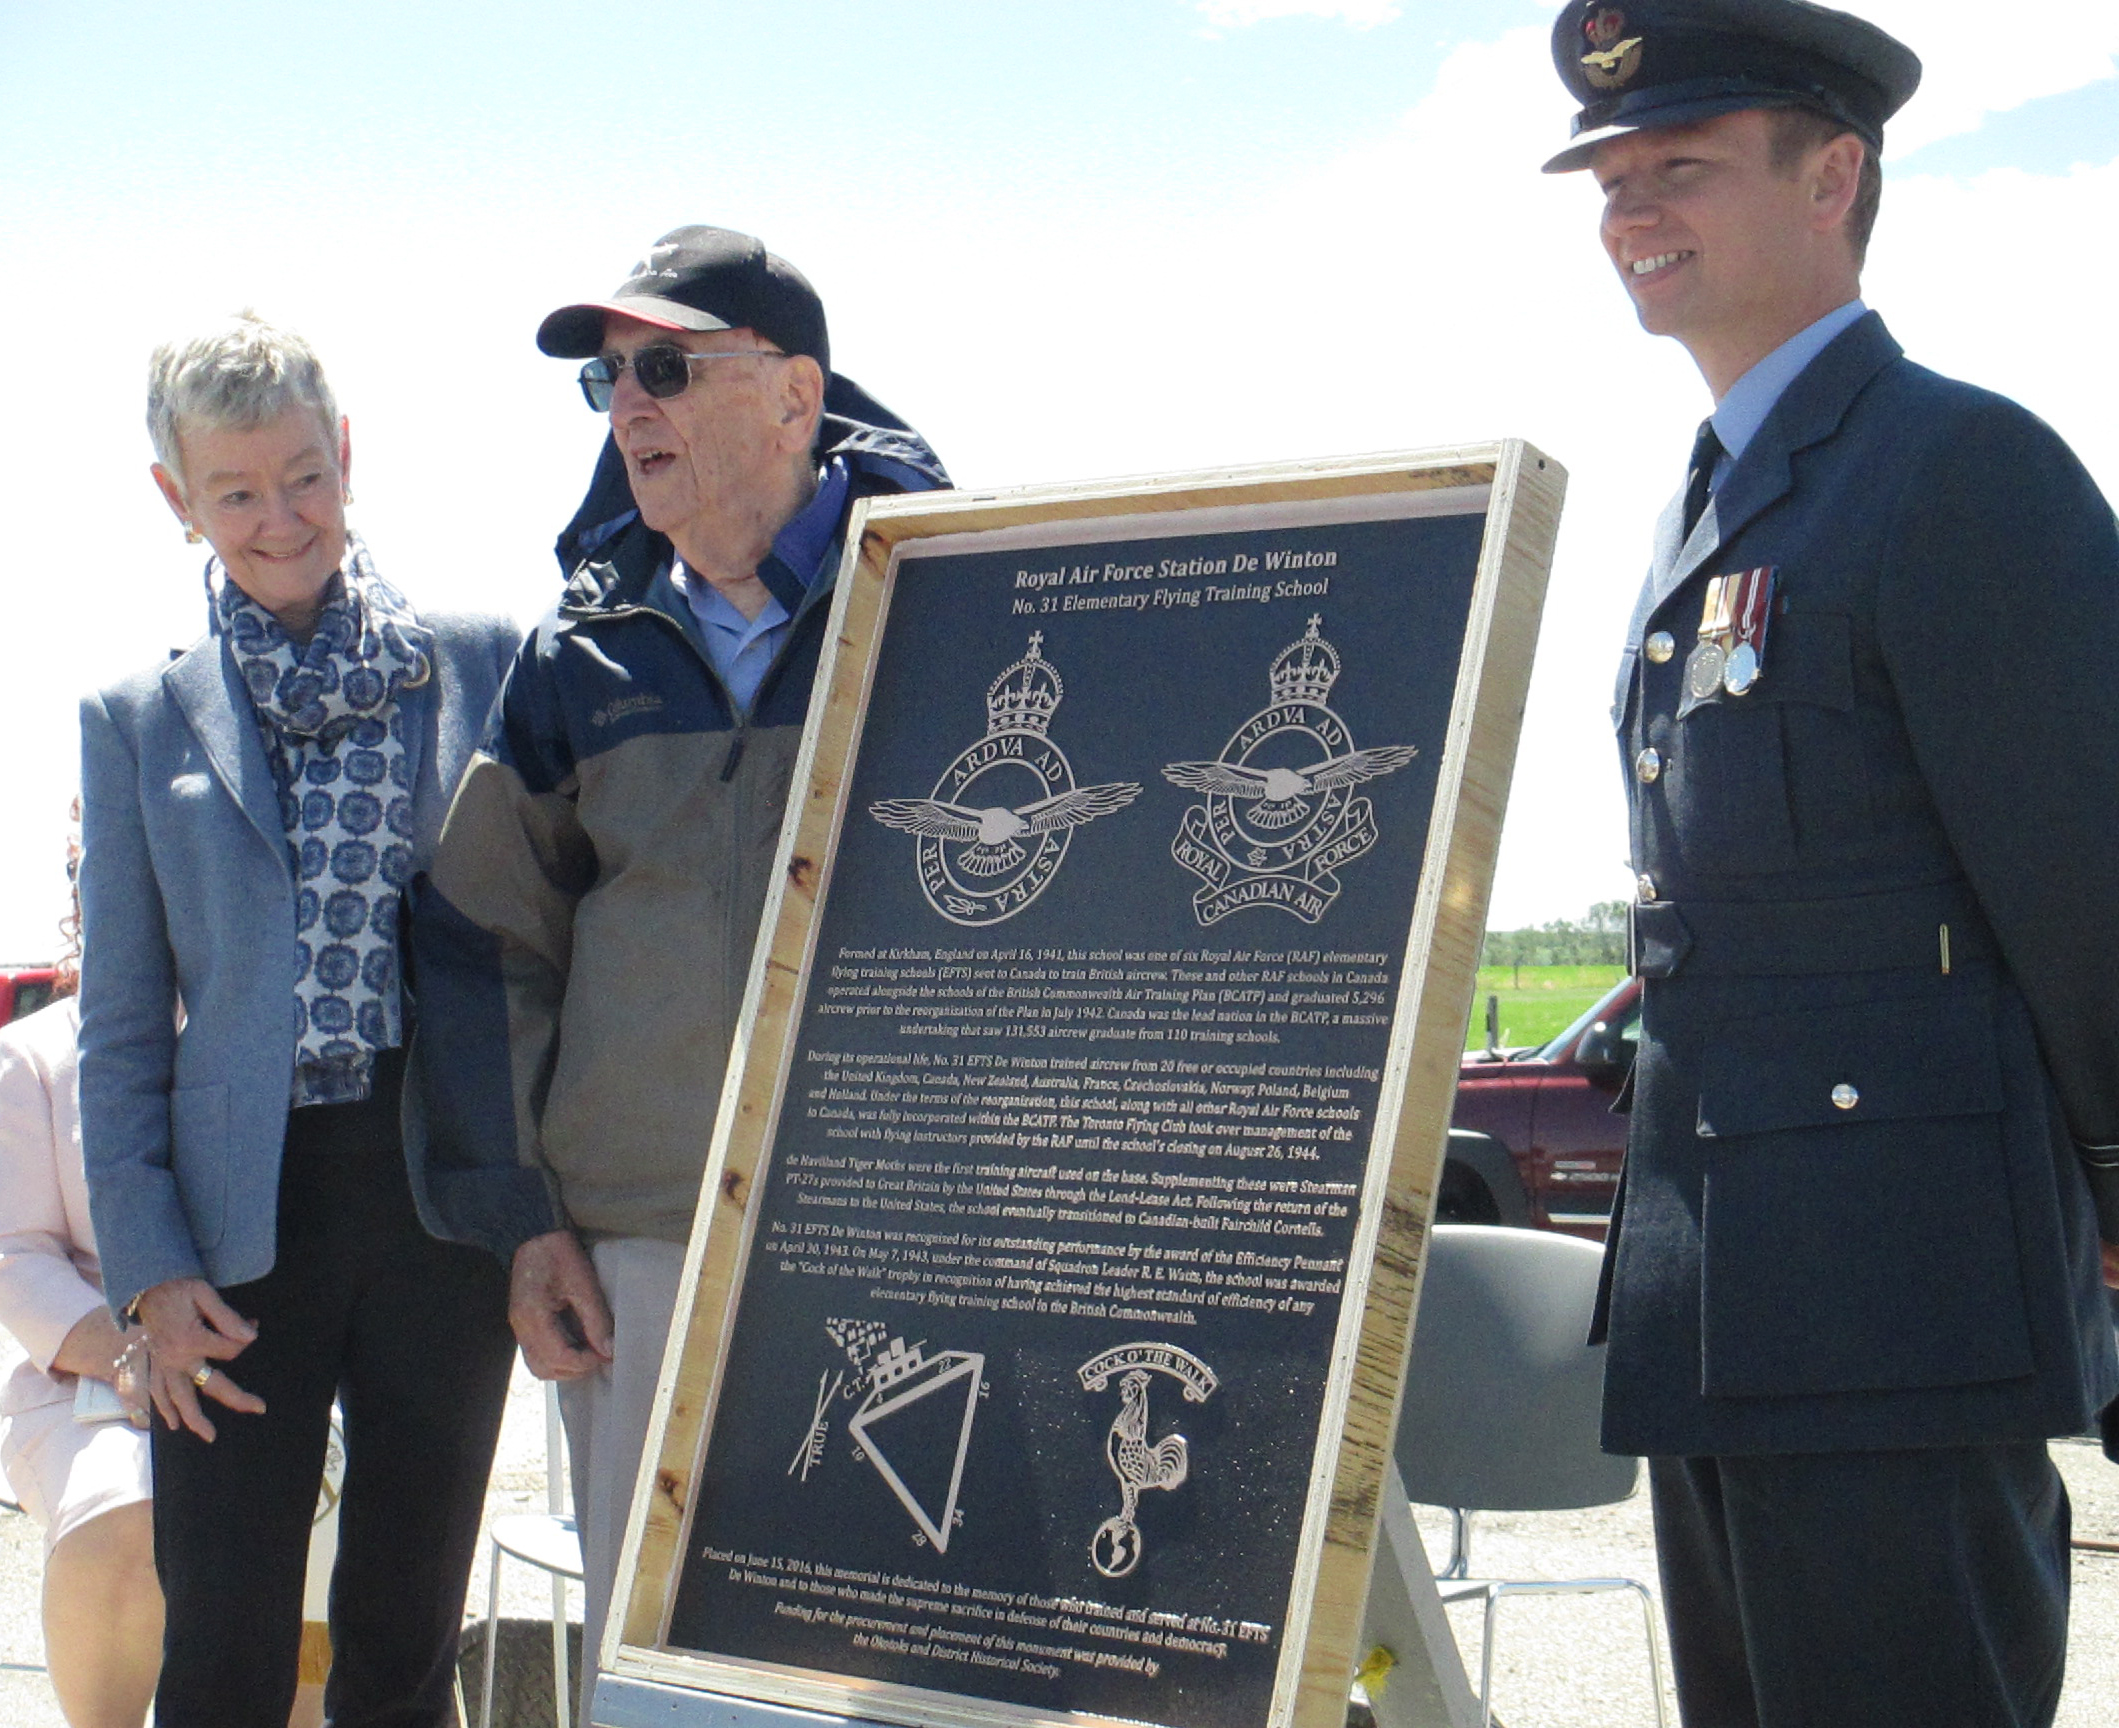 Susan Cowan, the daughter Squadron Leader Ron Watts, a commanding officer of No. 31 Elementary Flying Training School De Winton; Squadron Leader Rae Churchill, a Second World War flying instructor; and Flight Lieutenant James Andrews of the Royal Air Force, unveiled a memorial plaque during the school's 75th anniversary reunion on June 15, 2016. PHOTO: Courtesy of Anne Gafiuk